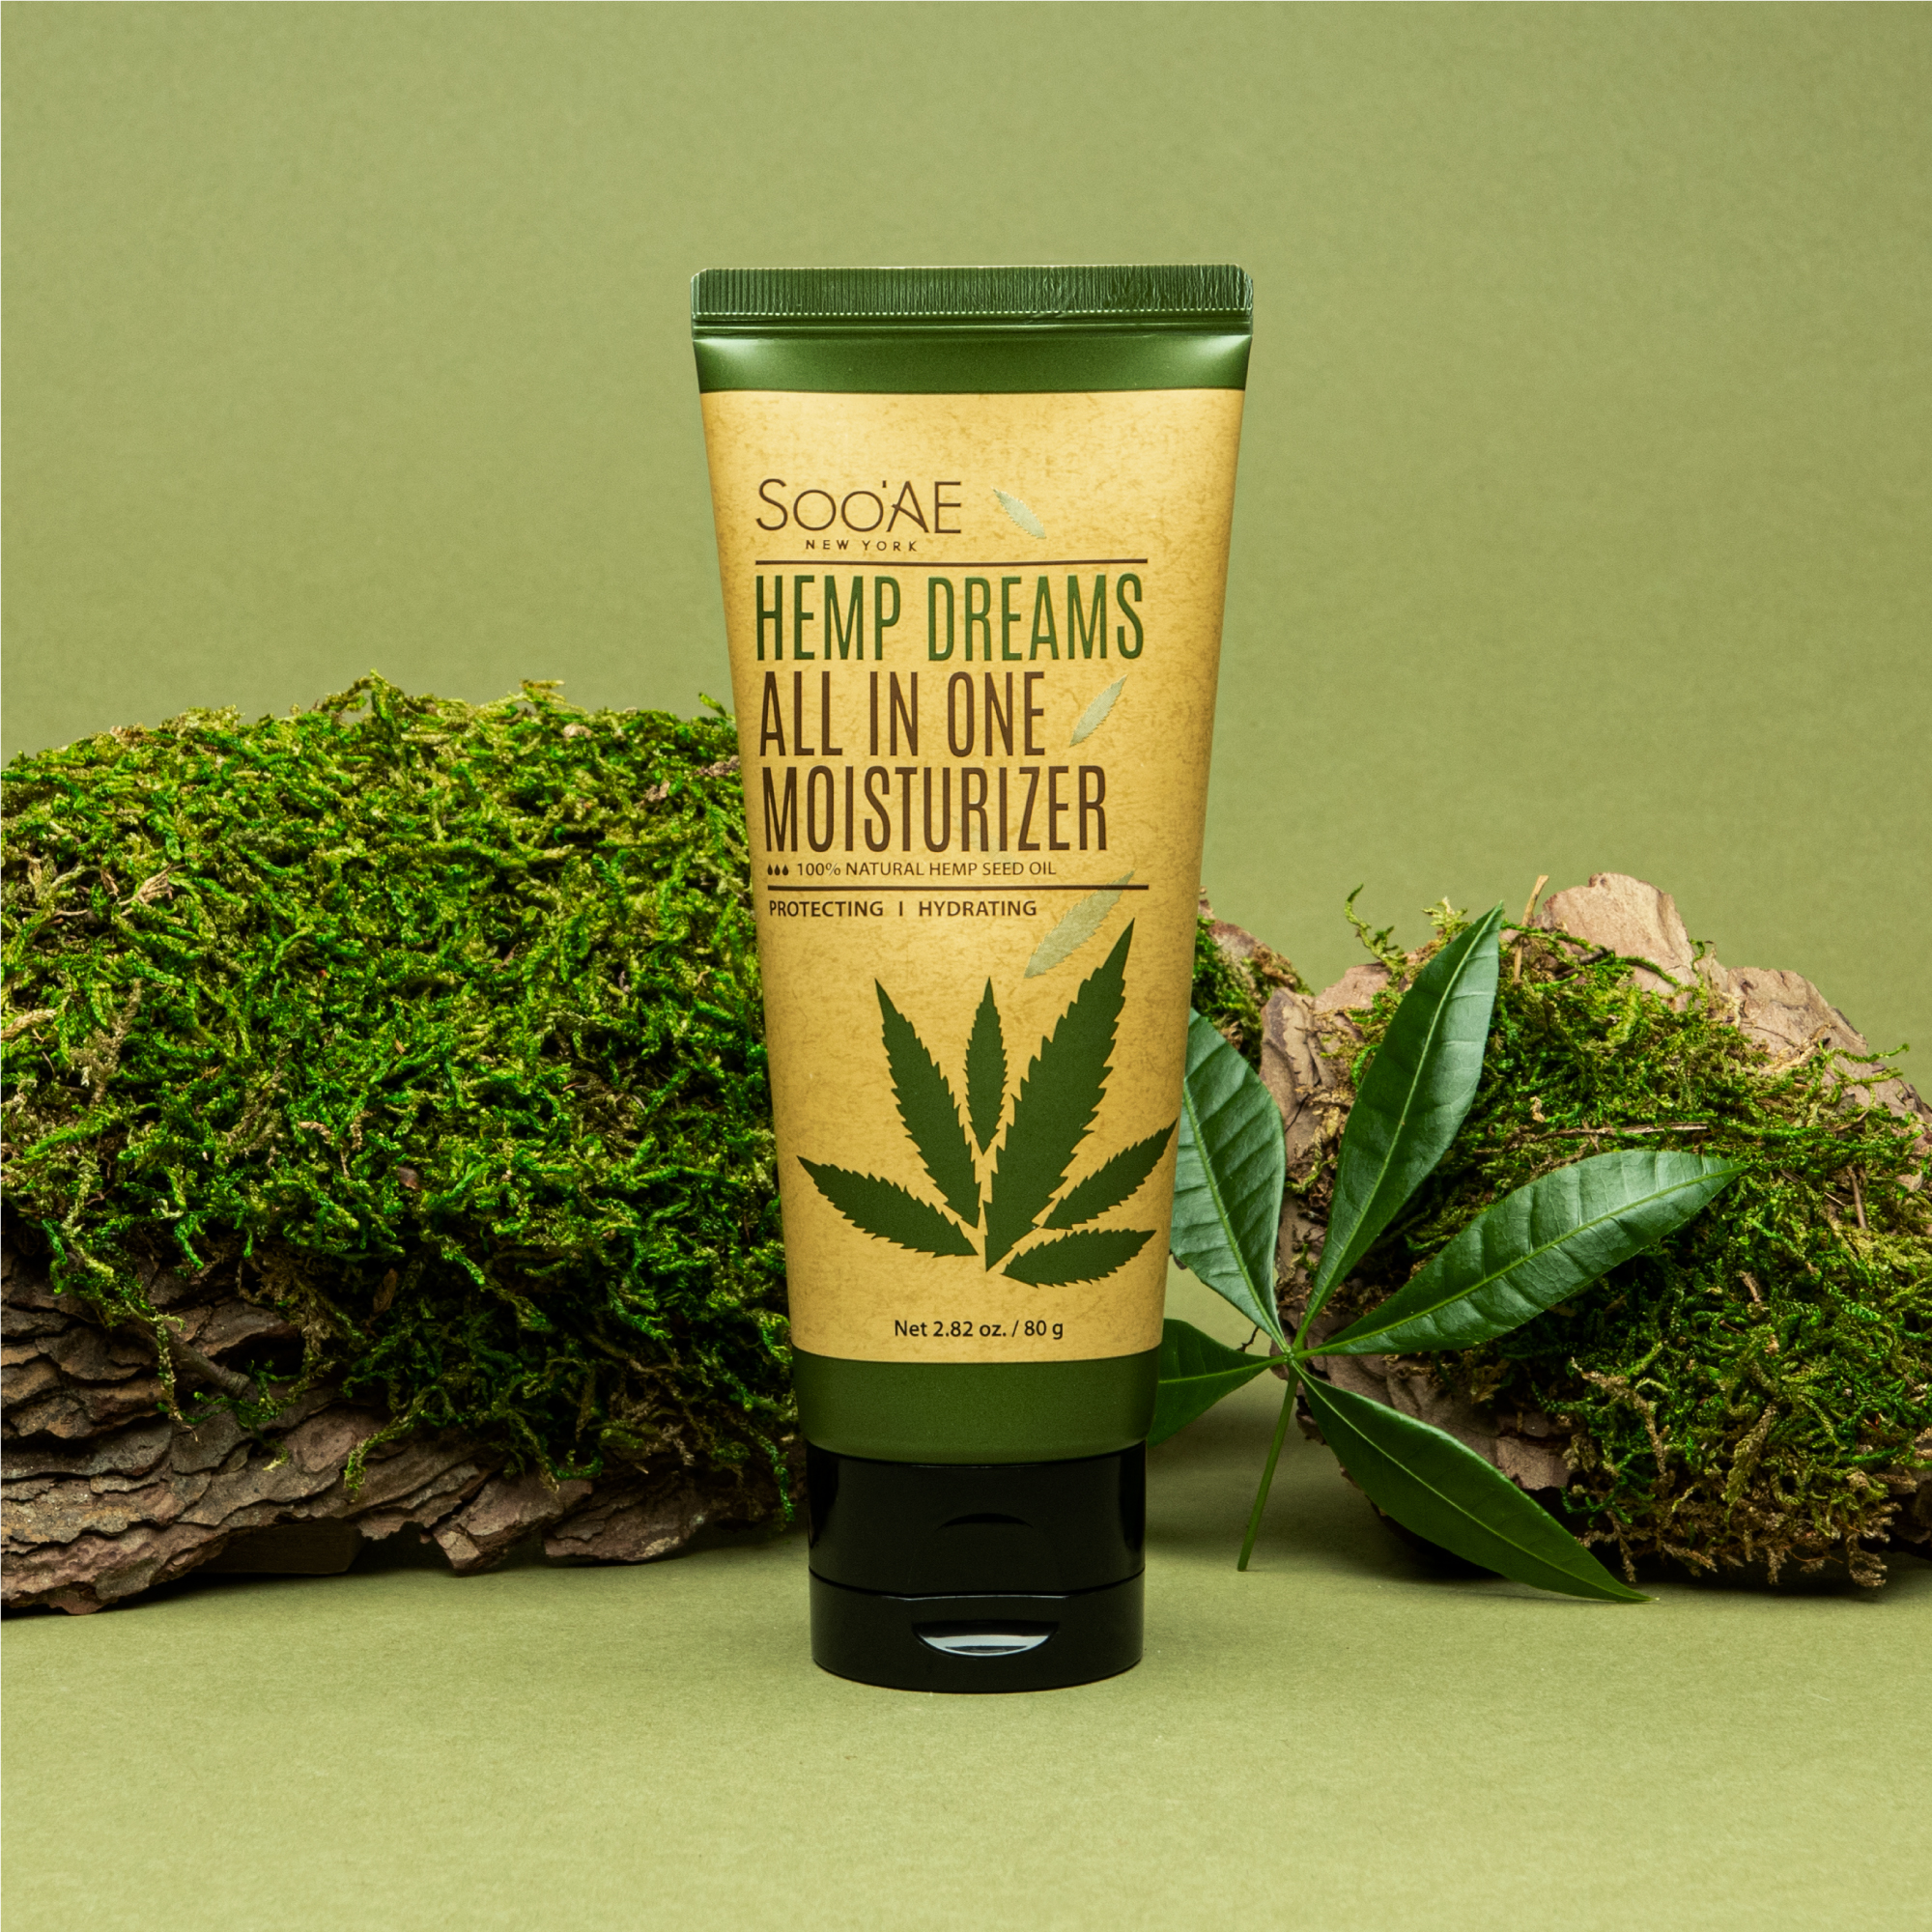 Hemp Dreams All In One Moisturizer Green Clean Beauty Simple Skincare From The Best Of Nature